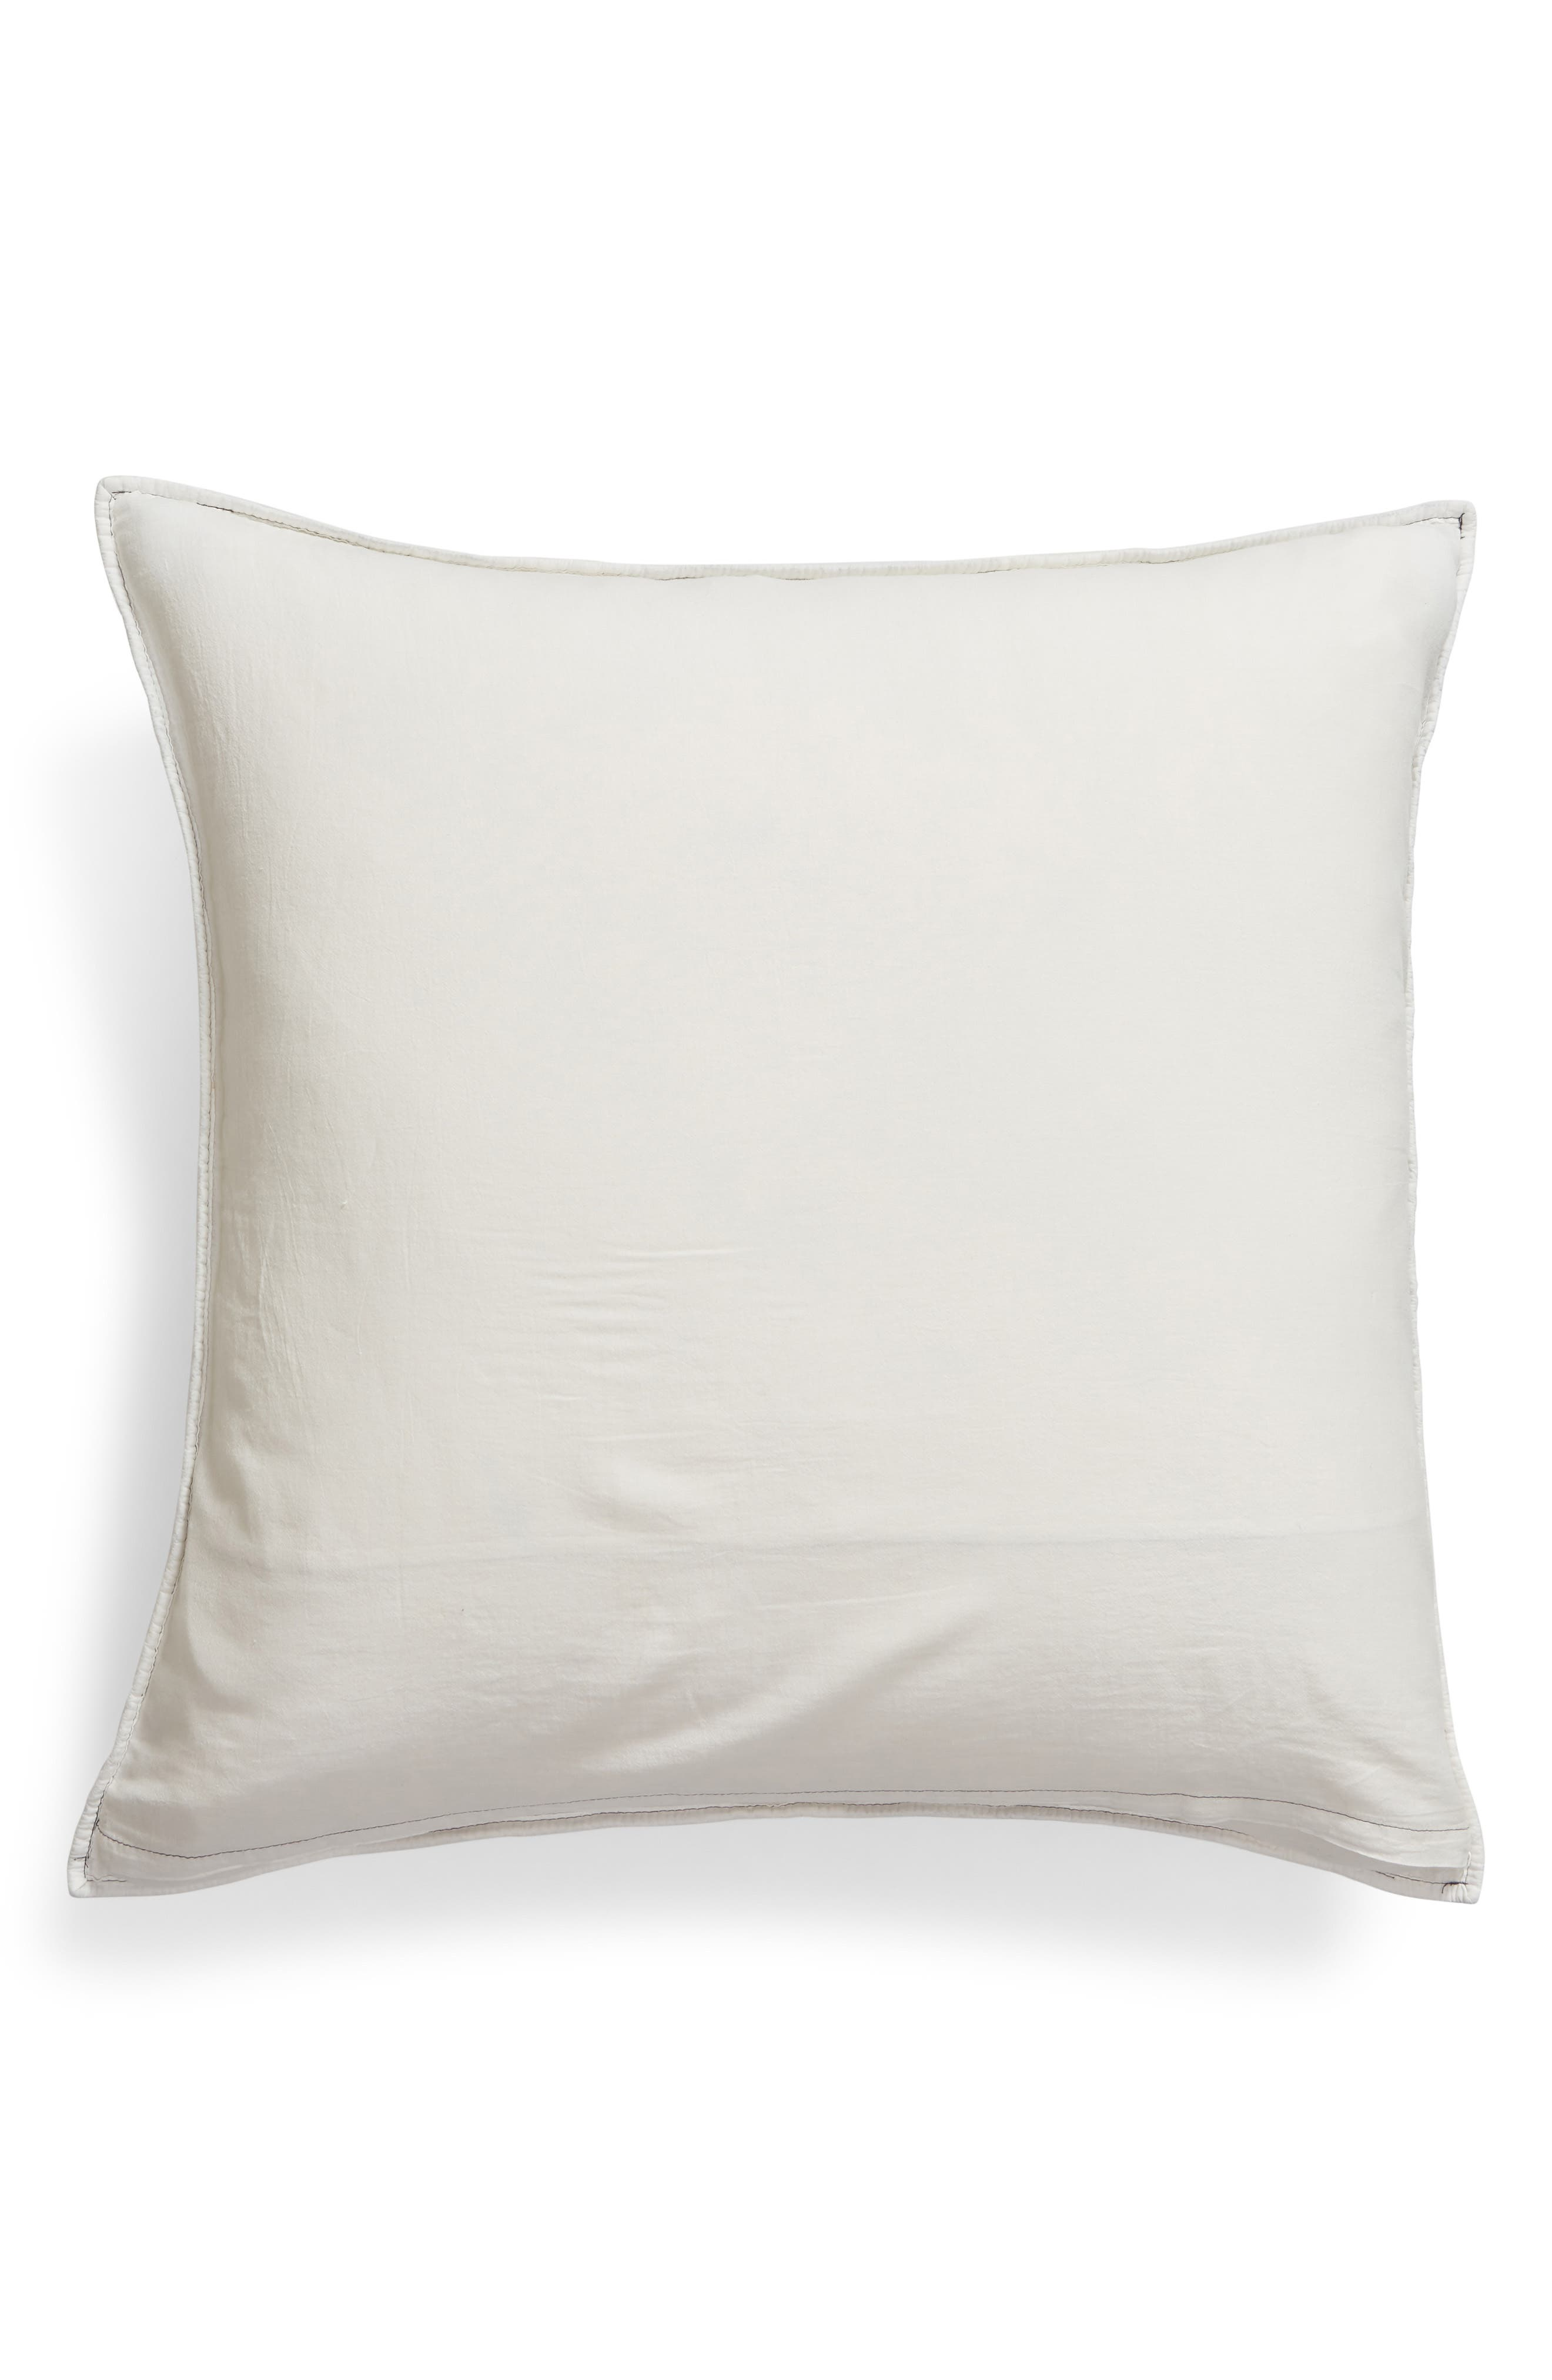 NORDSTROM AT HOME,                             Ria Embroidered Sham,                             Alternate thumbnail 2, color,                             IVORY